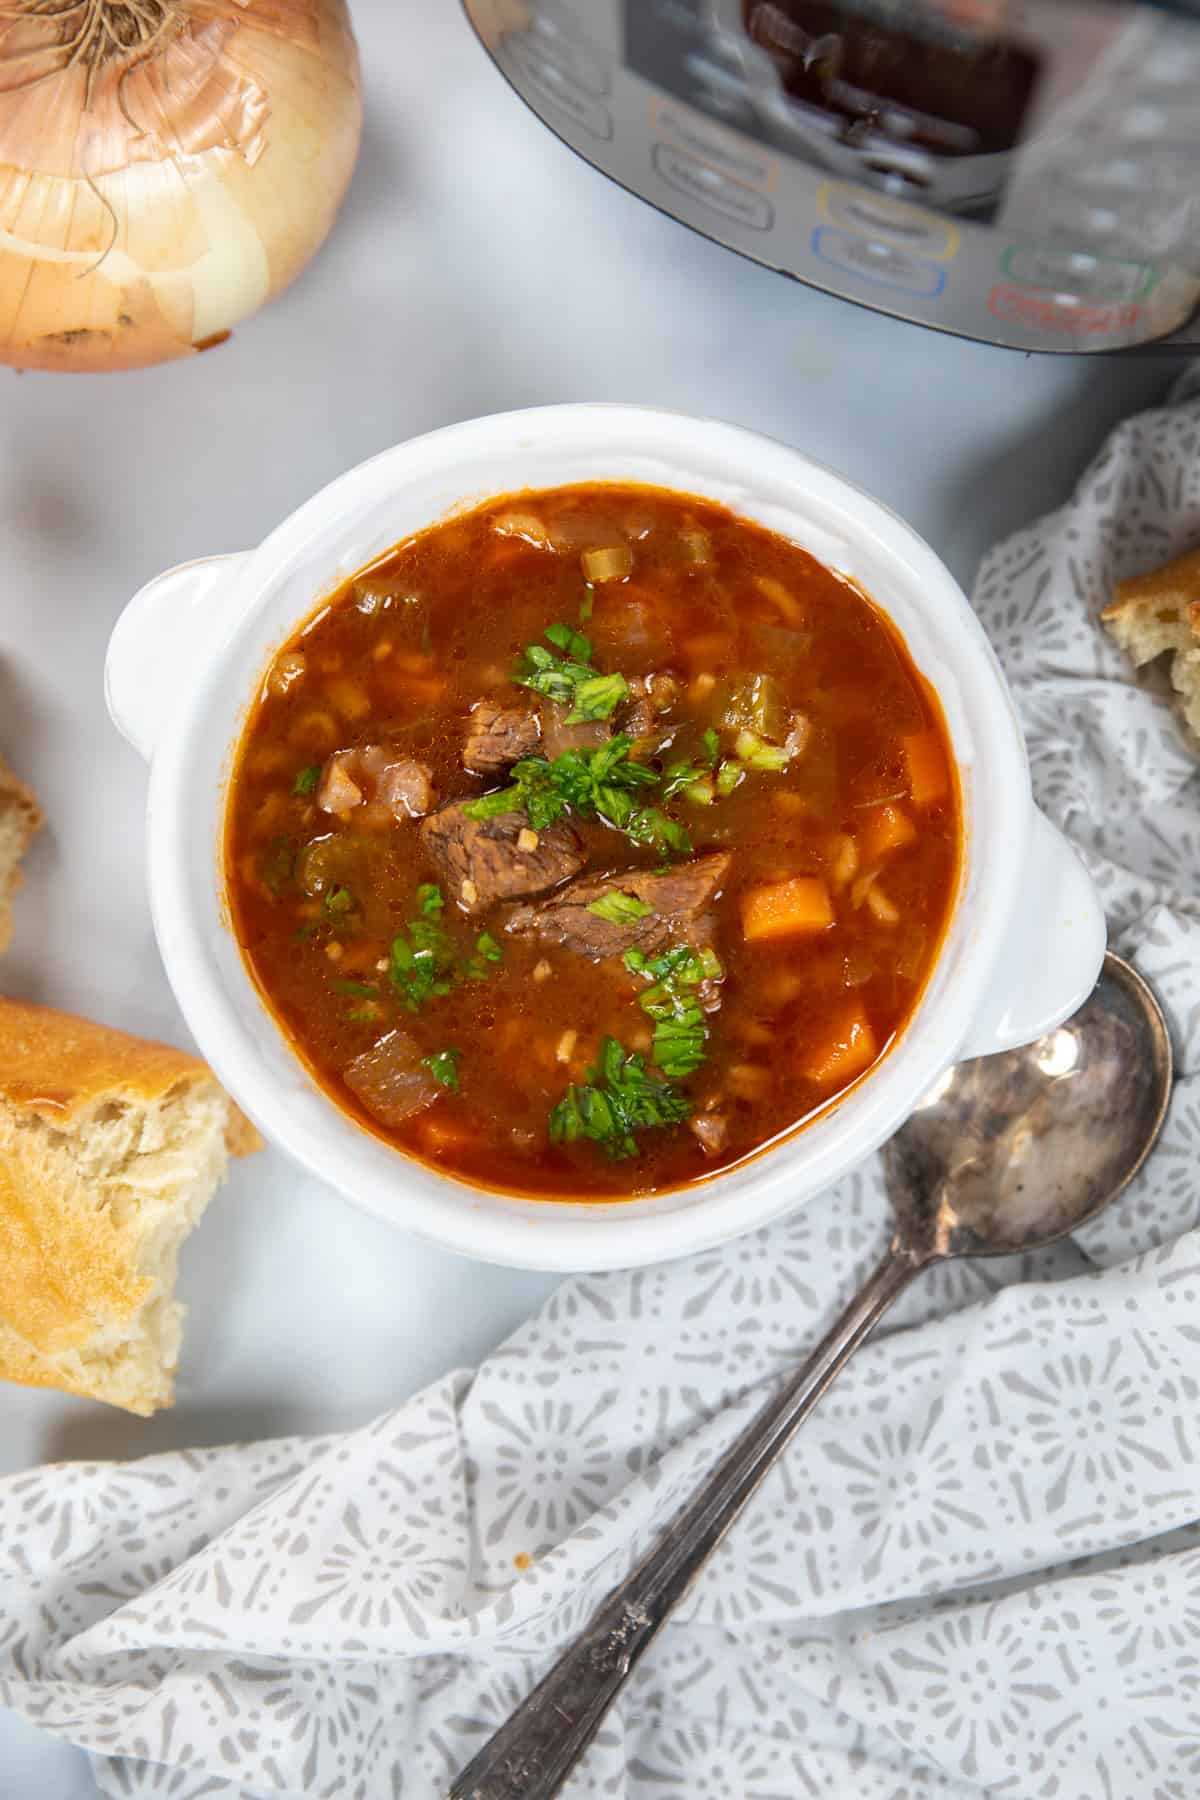 Bowl of Beef and Barley Soup next to instant pot and bread.